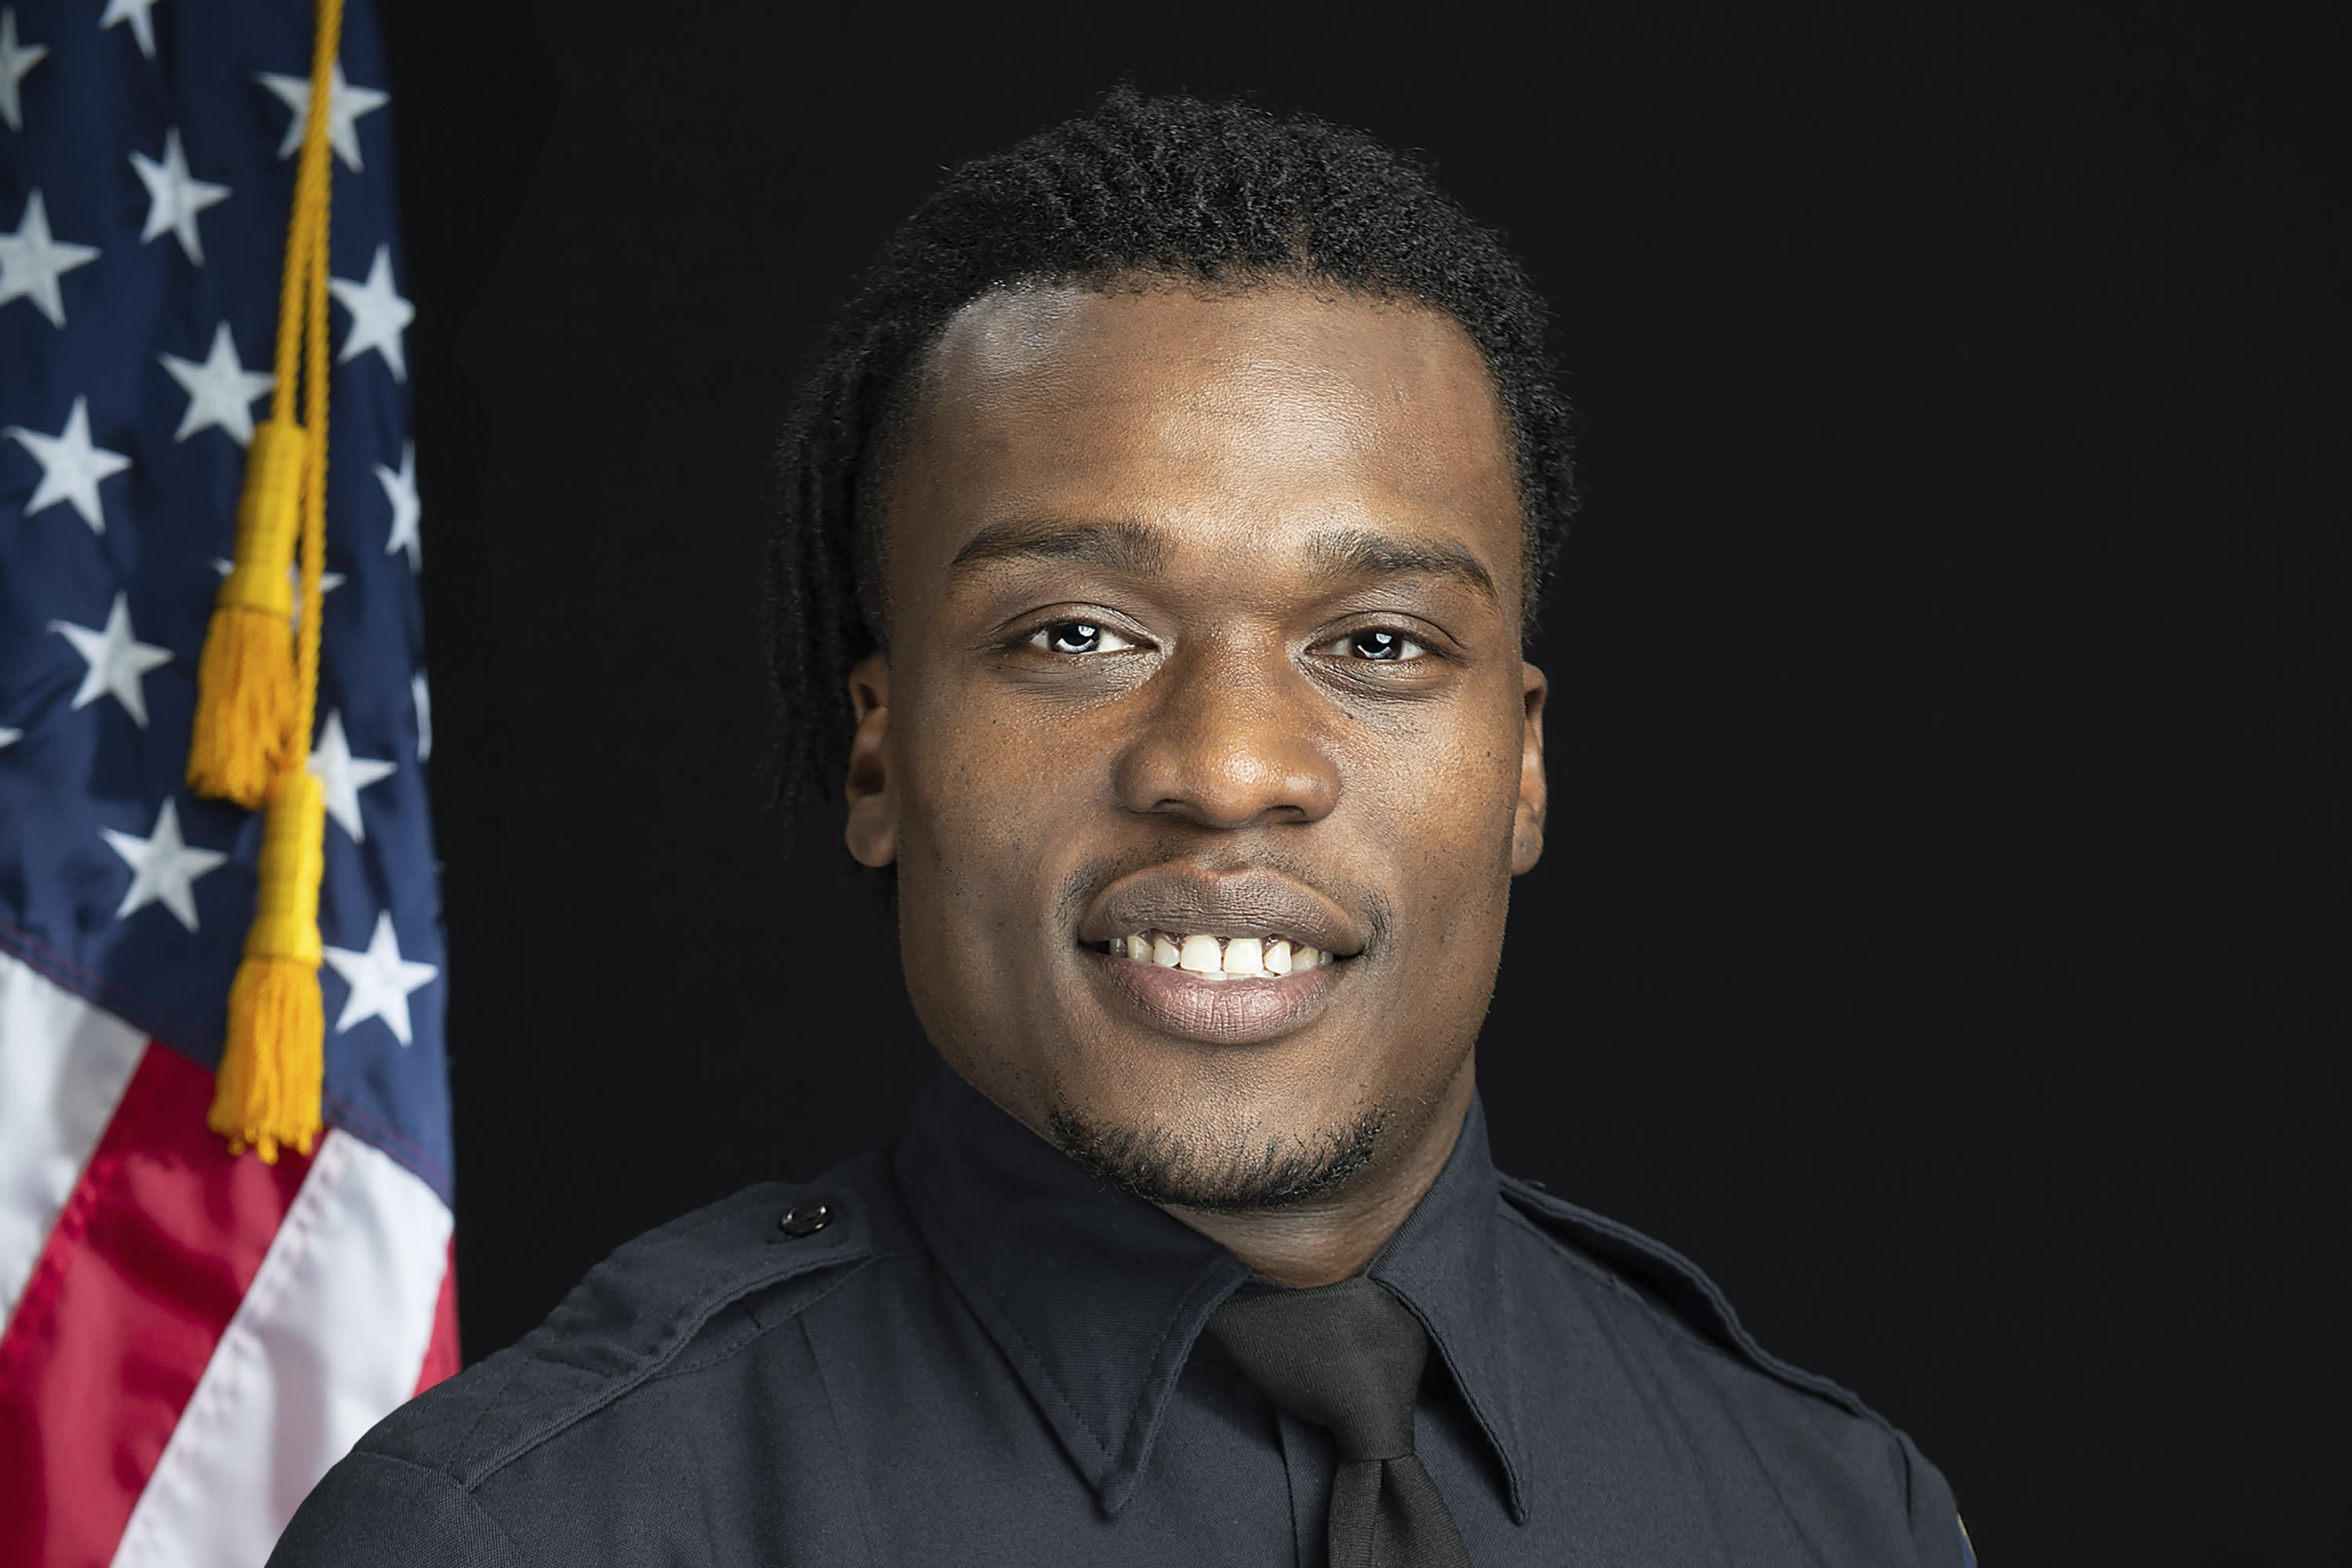 This undated photo provided by the Wauwatosa Police Department in Wauwatosa, Wis., shows Wauwatosa Police Officer Joseph Mensah. In a report released Wednesday Oct. 7, 2020, an independent investigator recommended officials in the Milwaukee suburb fire Mensah, who has shot and killed three people in the last five years. (Gary Monreal/Monreal Photography LLC/Wauwatosa Police Department via AP)